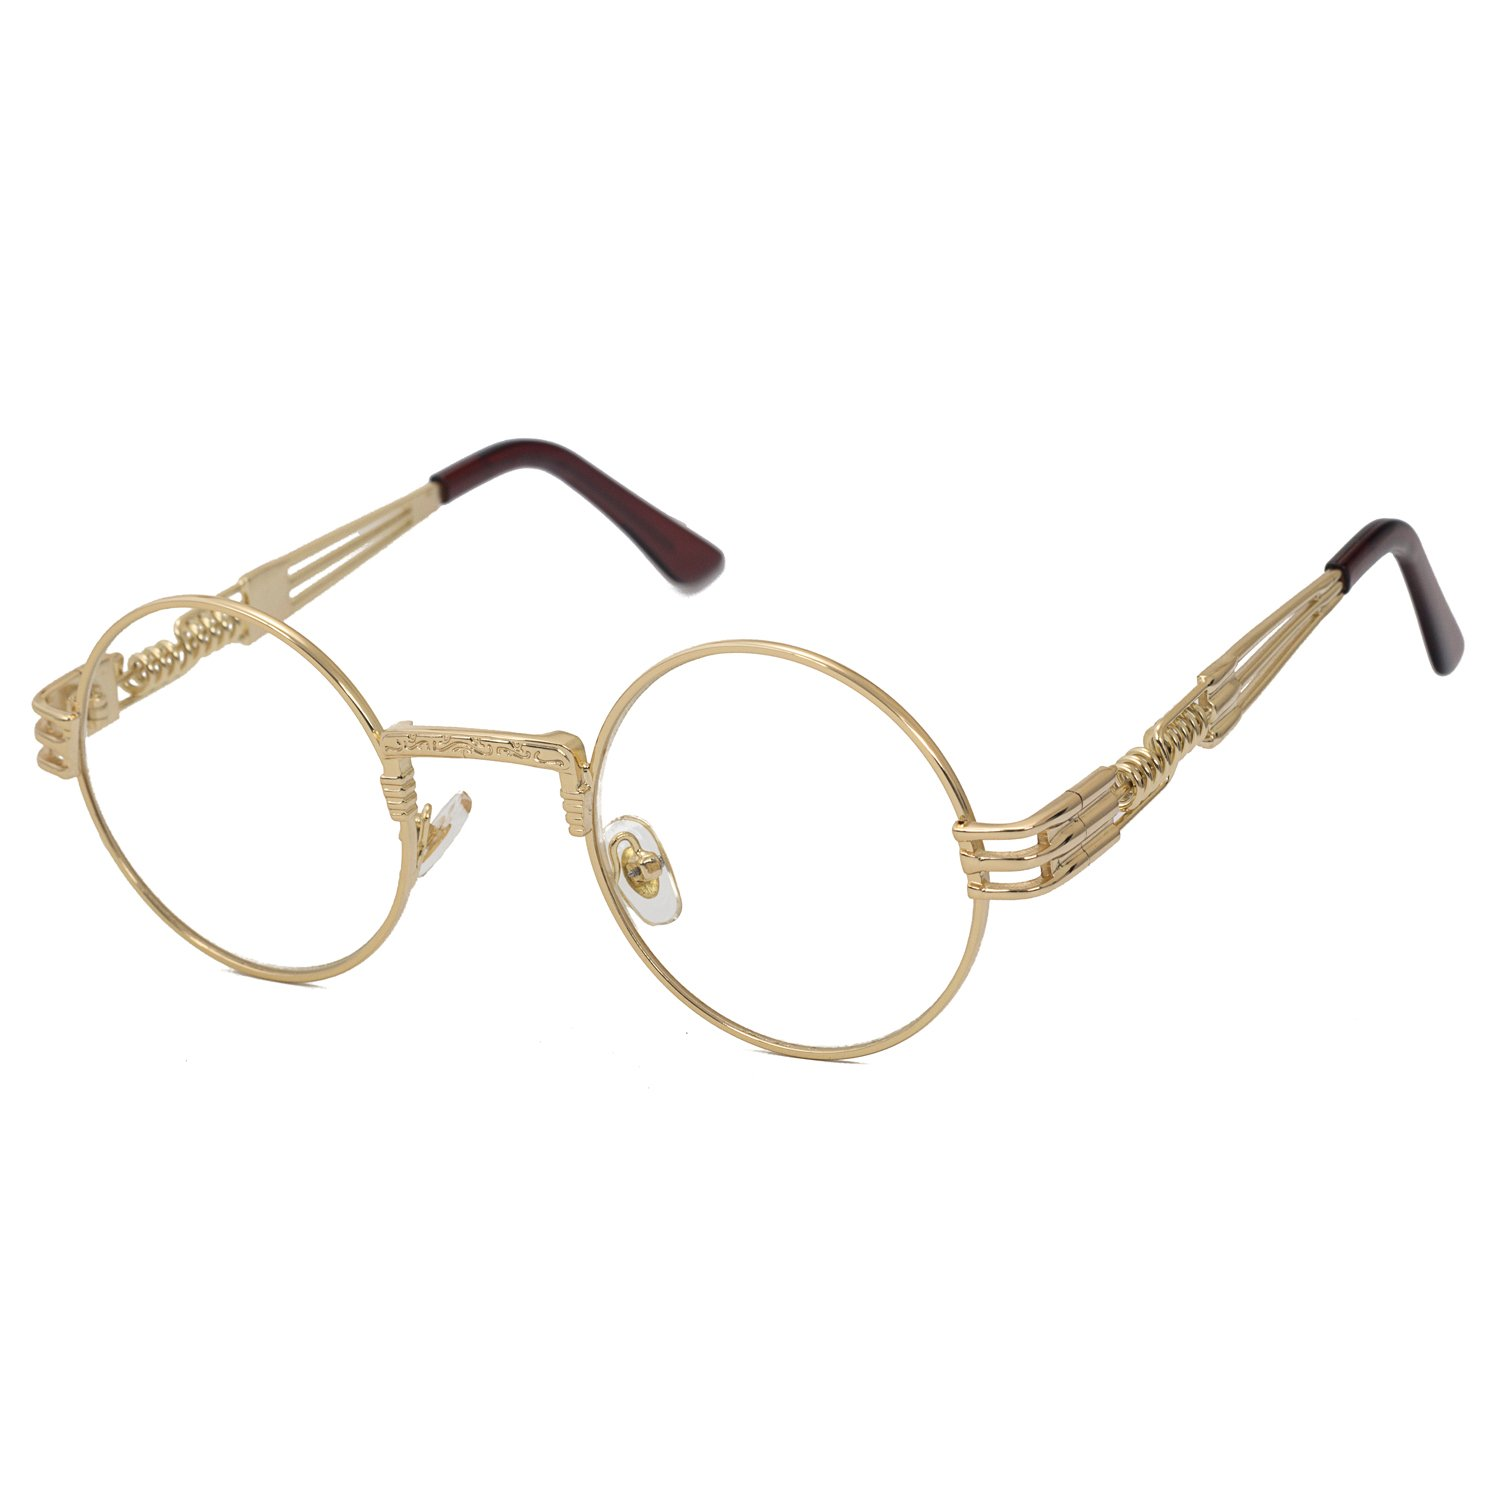 Pro Acme John Lennon Metal Spring Frame Round Steampunk Clear Lens Glasses (Gold Frame/Clear Lens) by Pro Acme